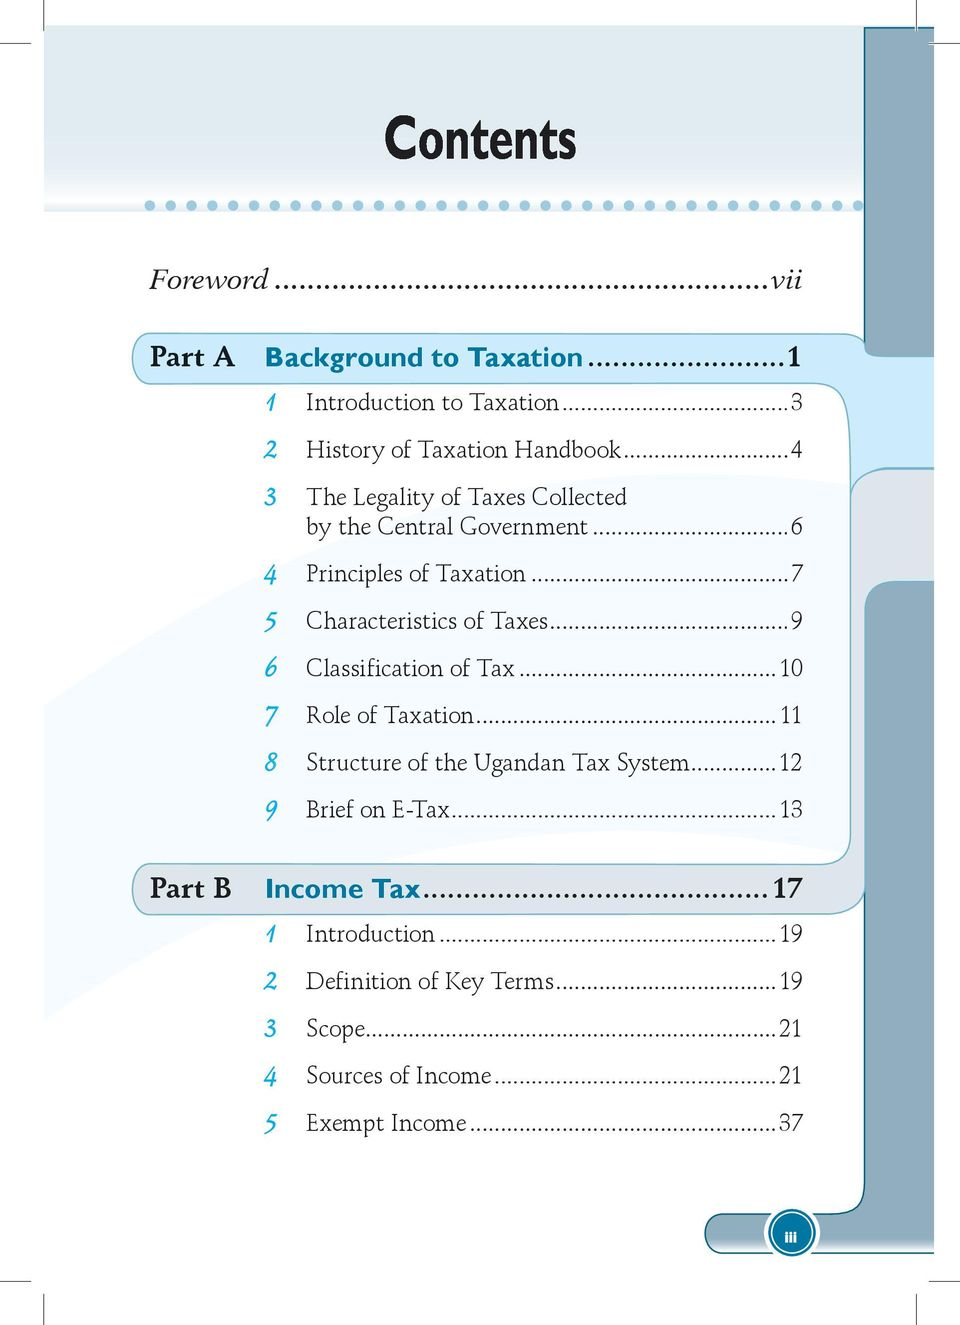 ..9 6 Classification of Tax...10 7 Role of Taxation... 11 8 Structure of the Ugandan Tax System...12 9 Brief on E-Tax.